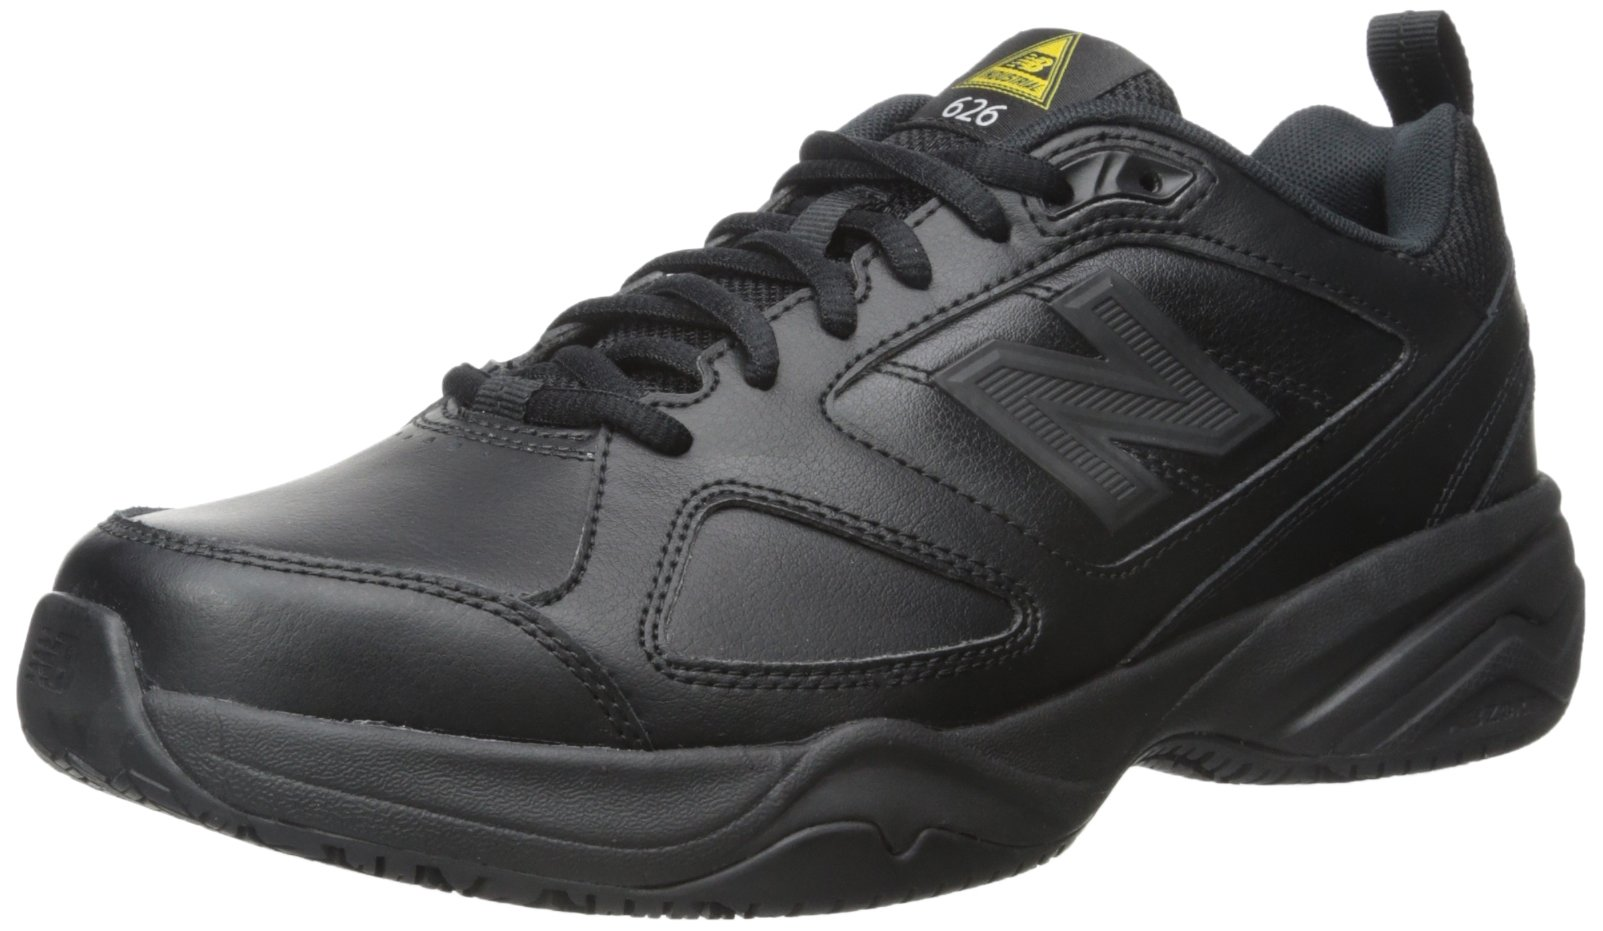 New Balance Men's MID626v2 Work Training Shoe, Black, 9 D US by New Balance